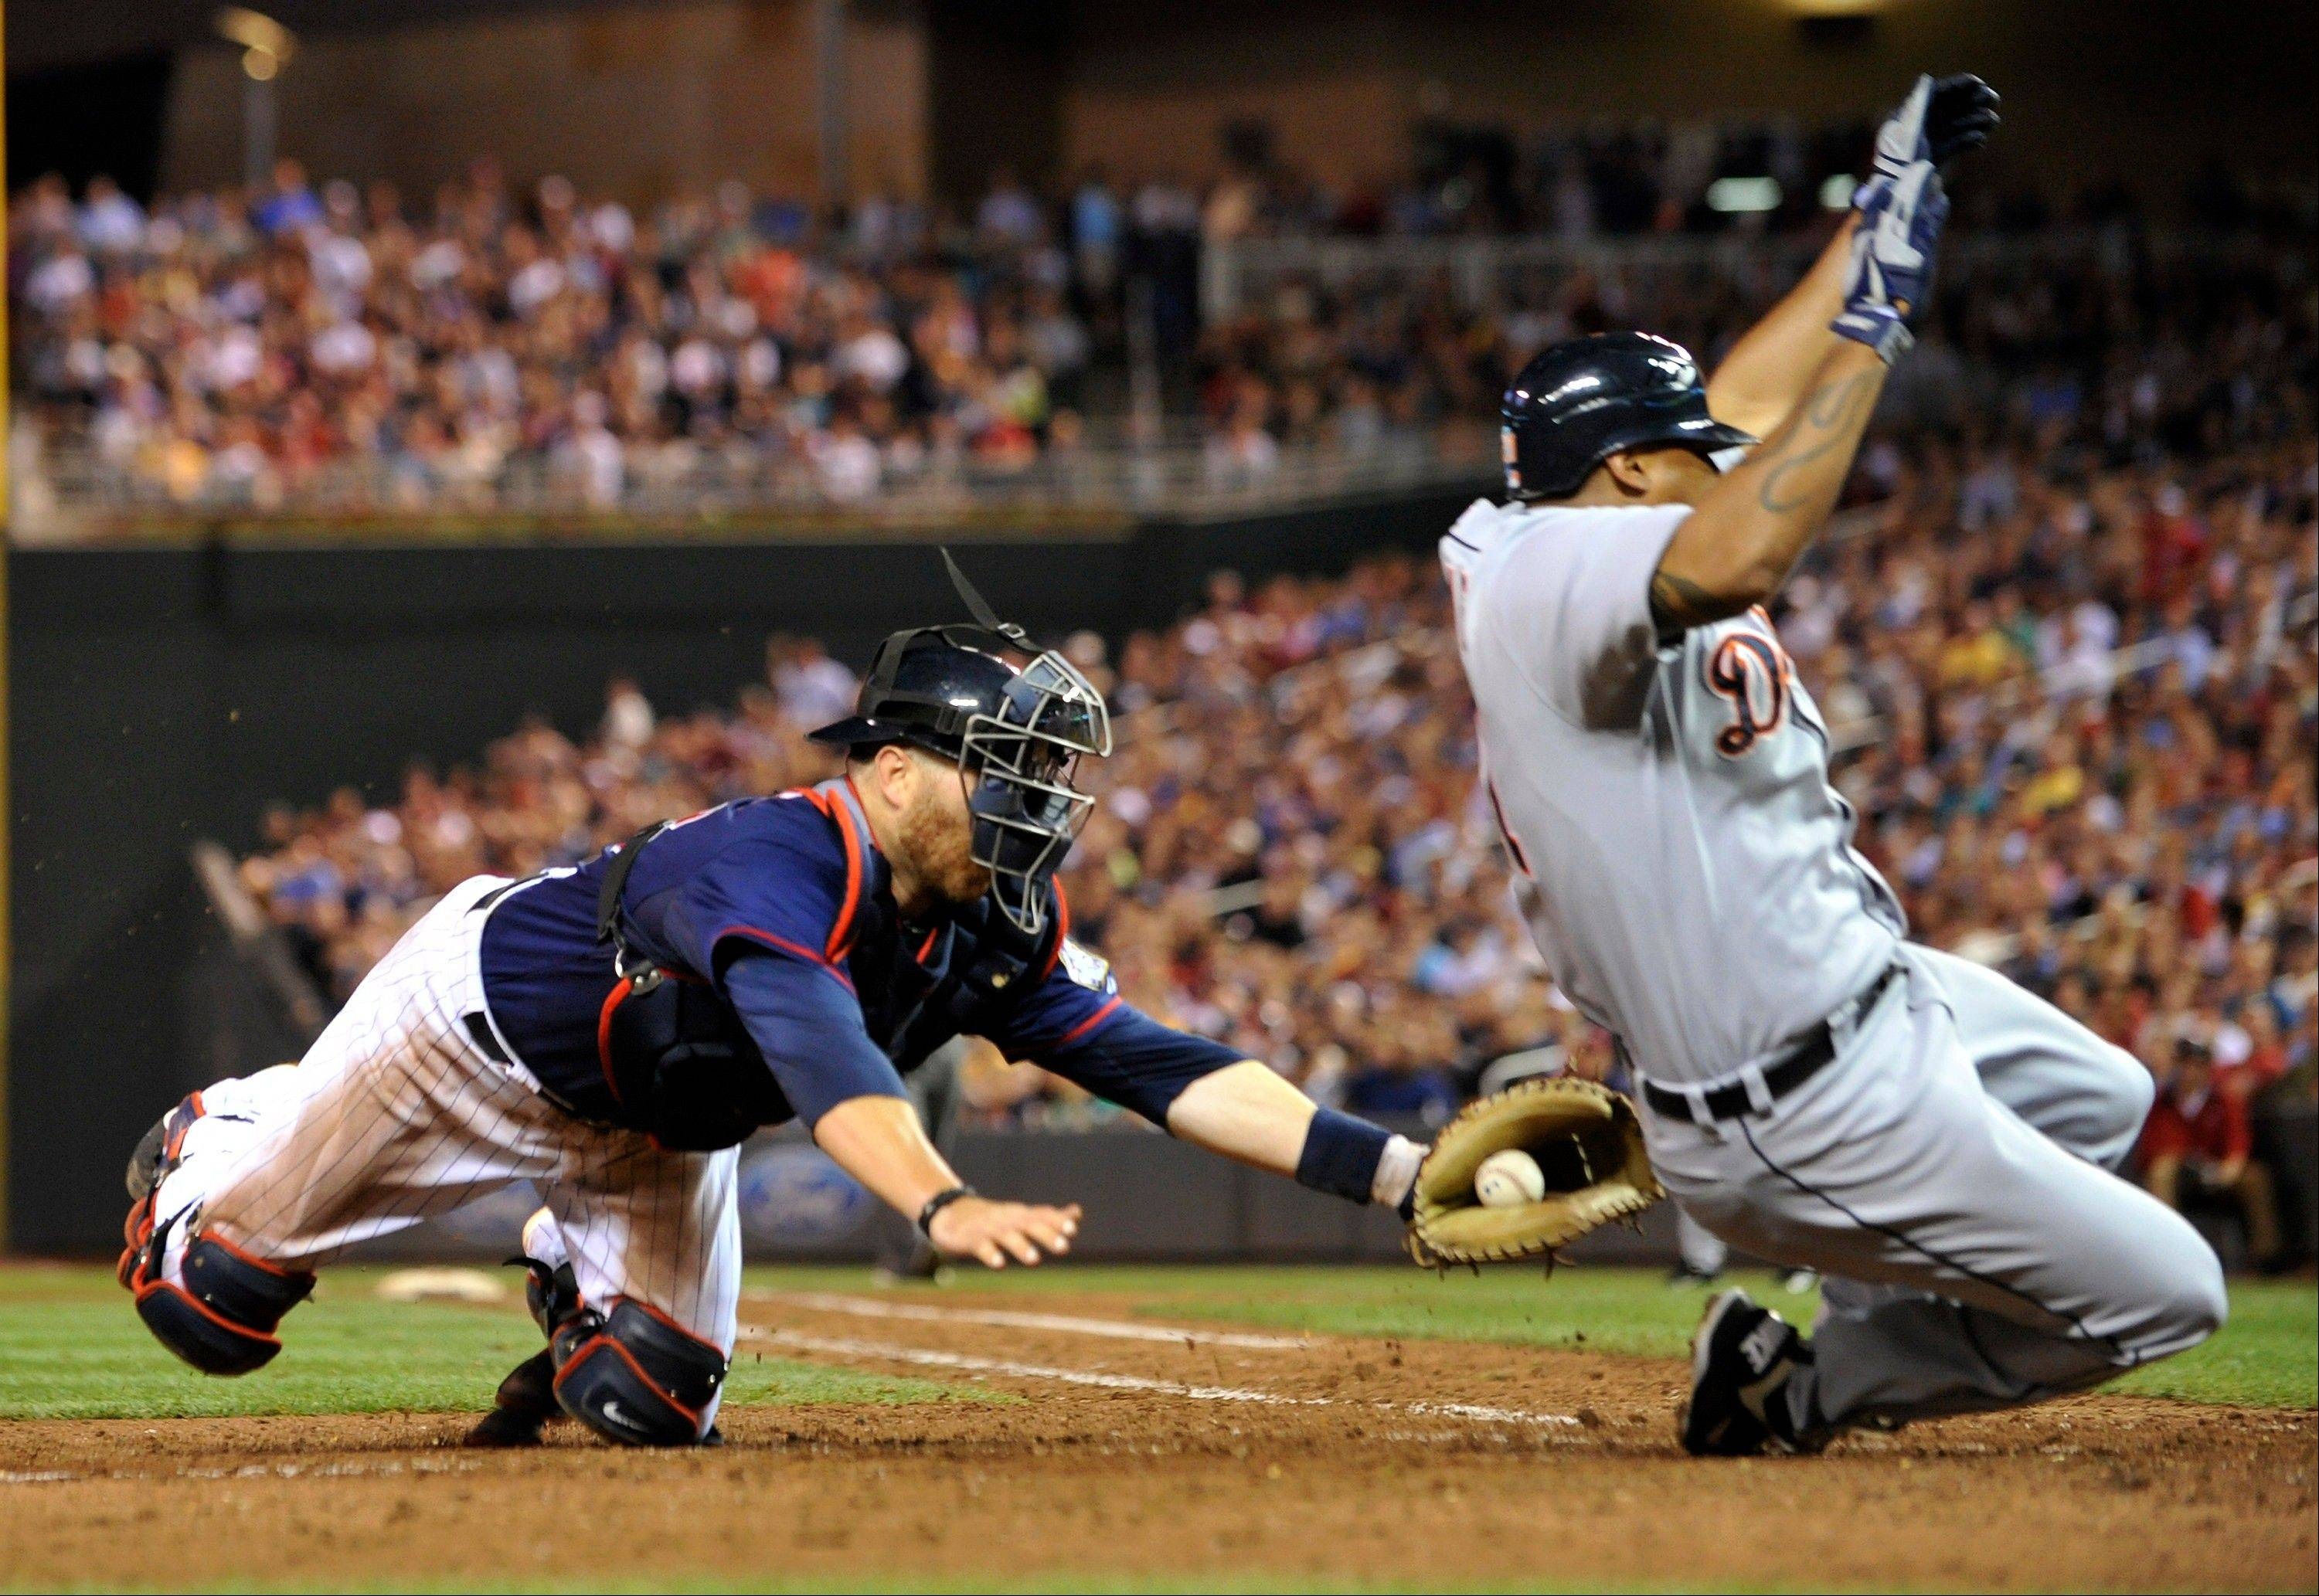 Minnesota Twins catcher Ryan Doumit, left, tags out the Detroit Tigers� Delmon Young as he tries to score from second on a single by Gerald Laird Tuesday during the eighth inning in Minneapolis.